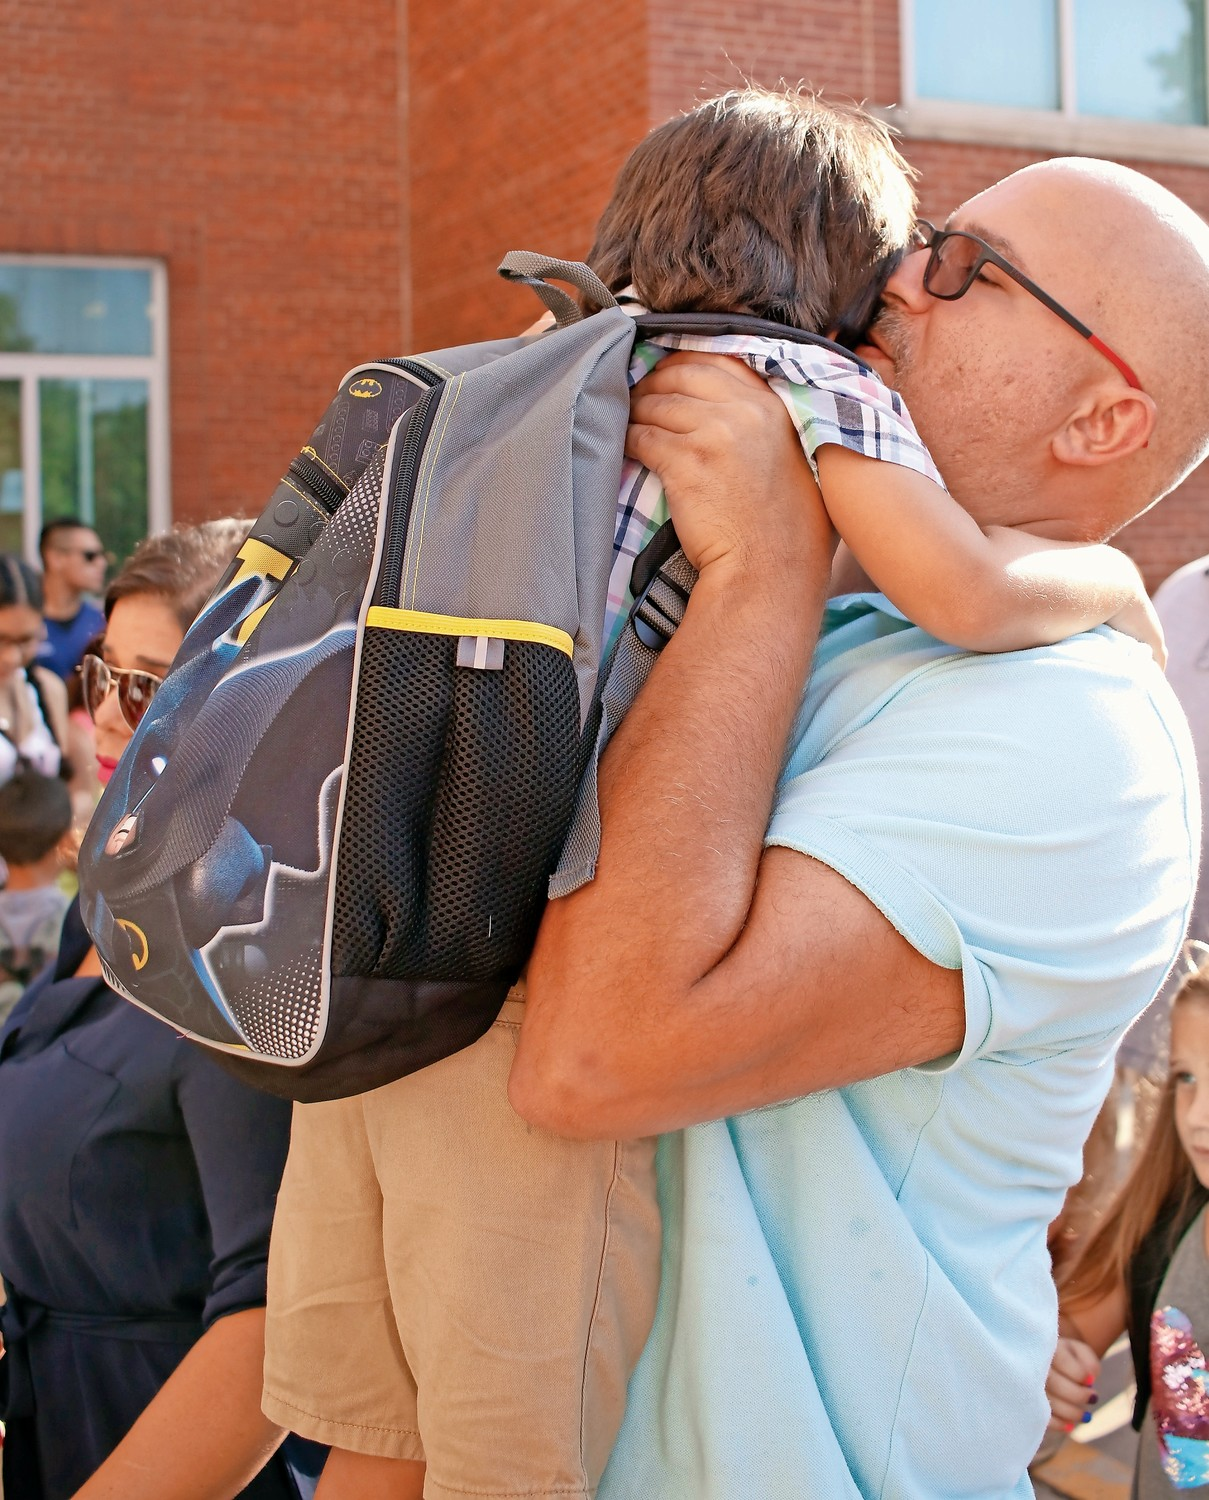 Cristian Irizarry gave his father, John, a hug before heading inside.